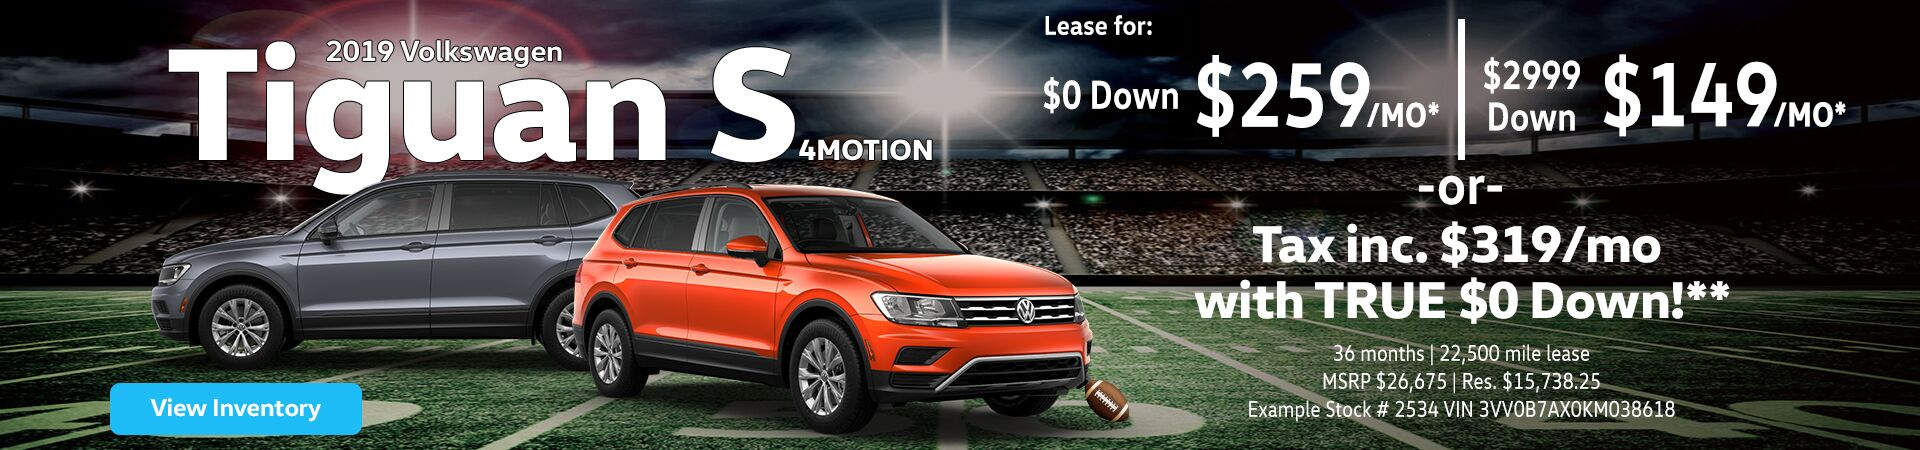 2019 Tiguan lease offers near Kingston, NY